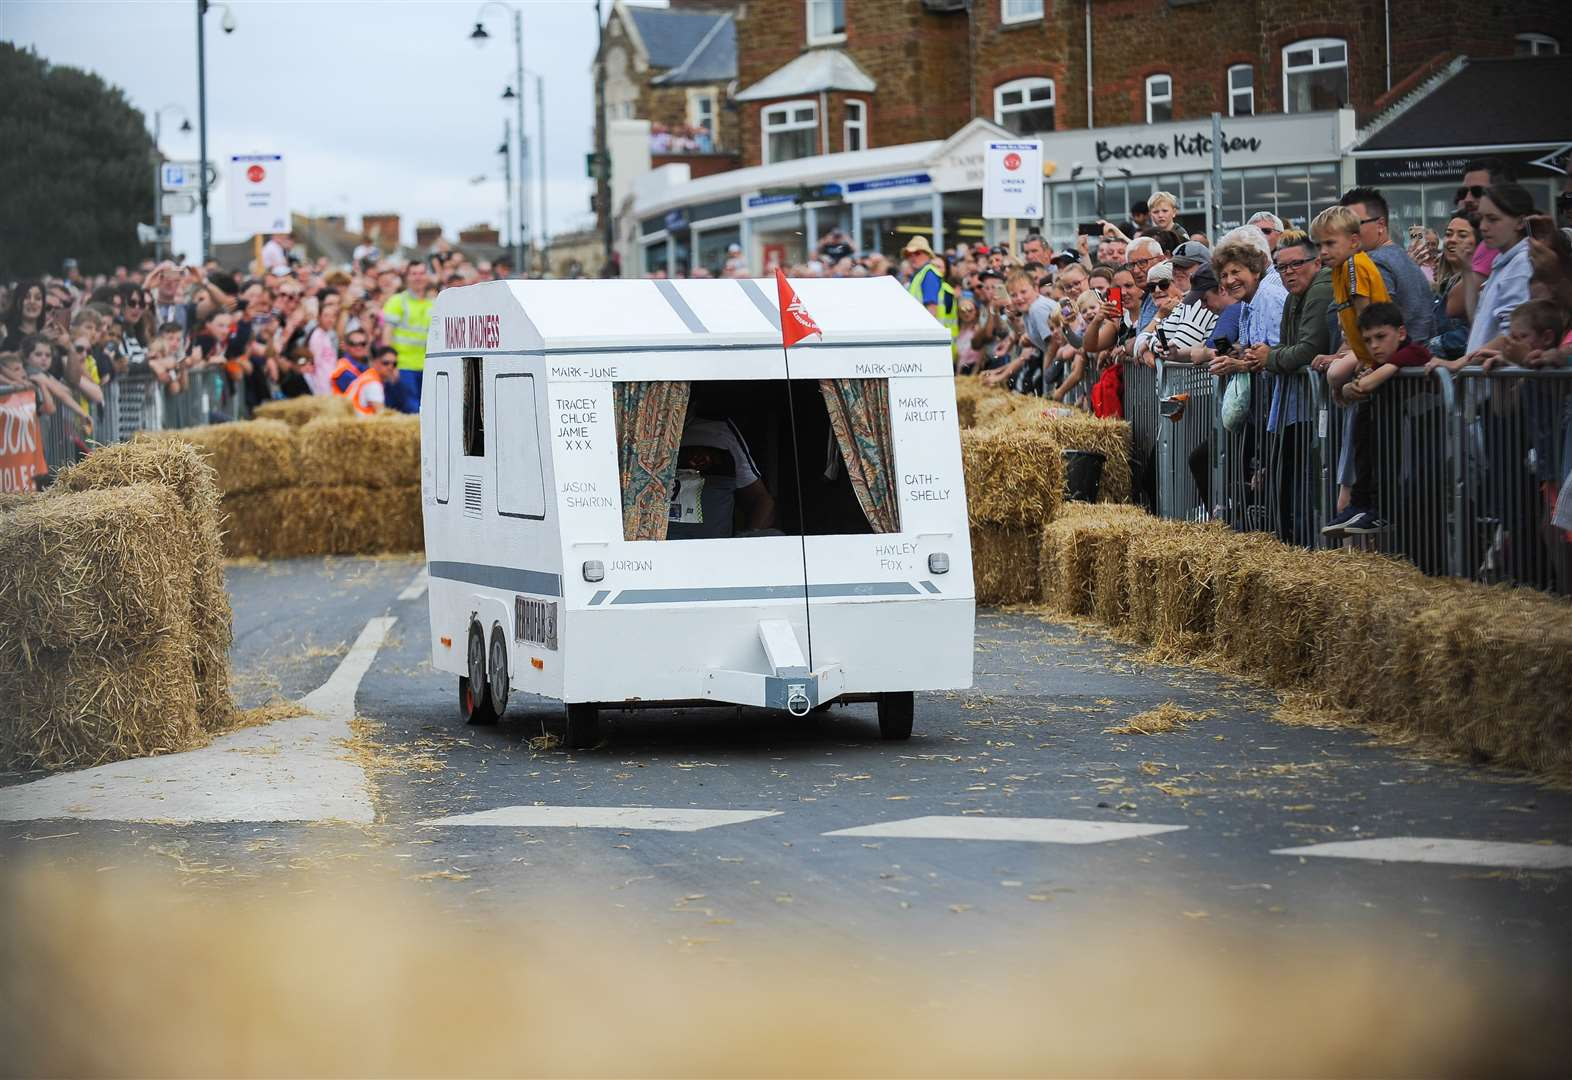 Thousands enjoy 'most popular soap box derby yet' as karts race through Hunstanton